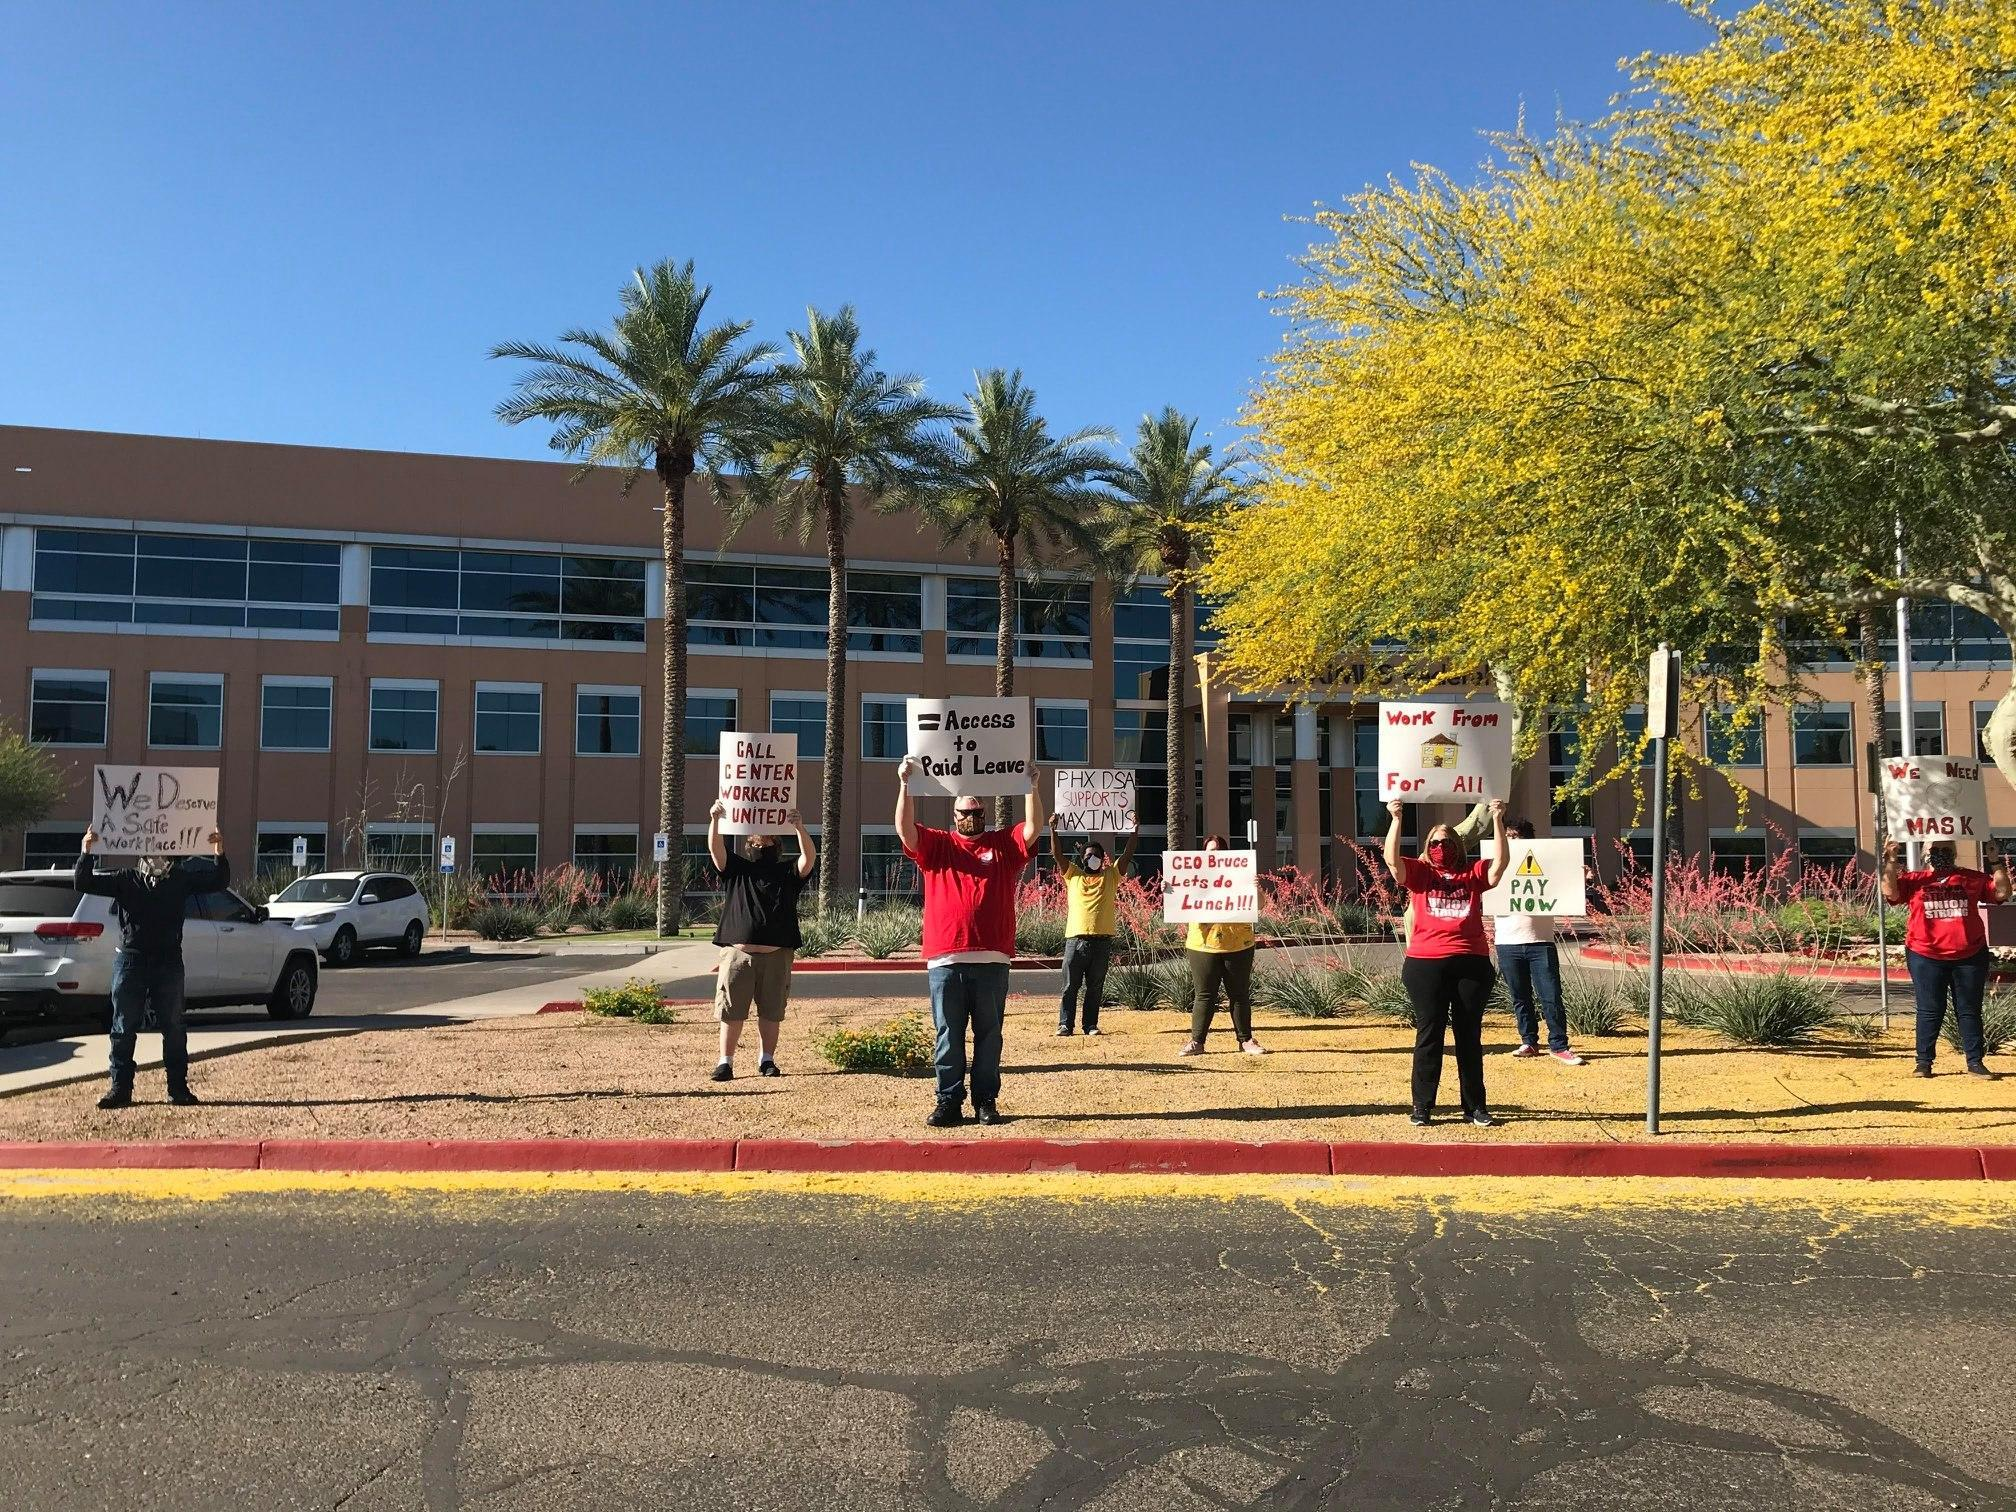 Protest at Maximus call center in Phoenix about working conditions during COVID pandemic